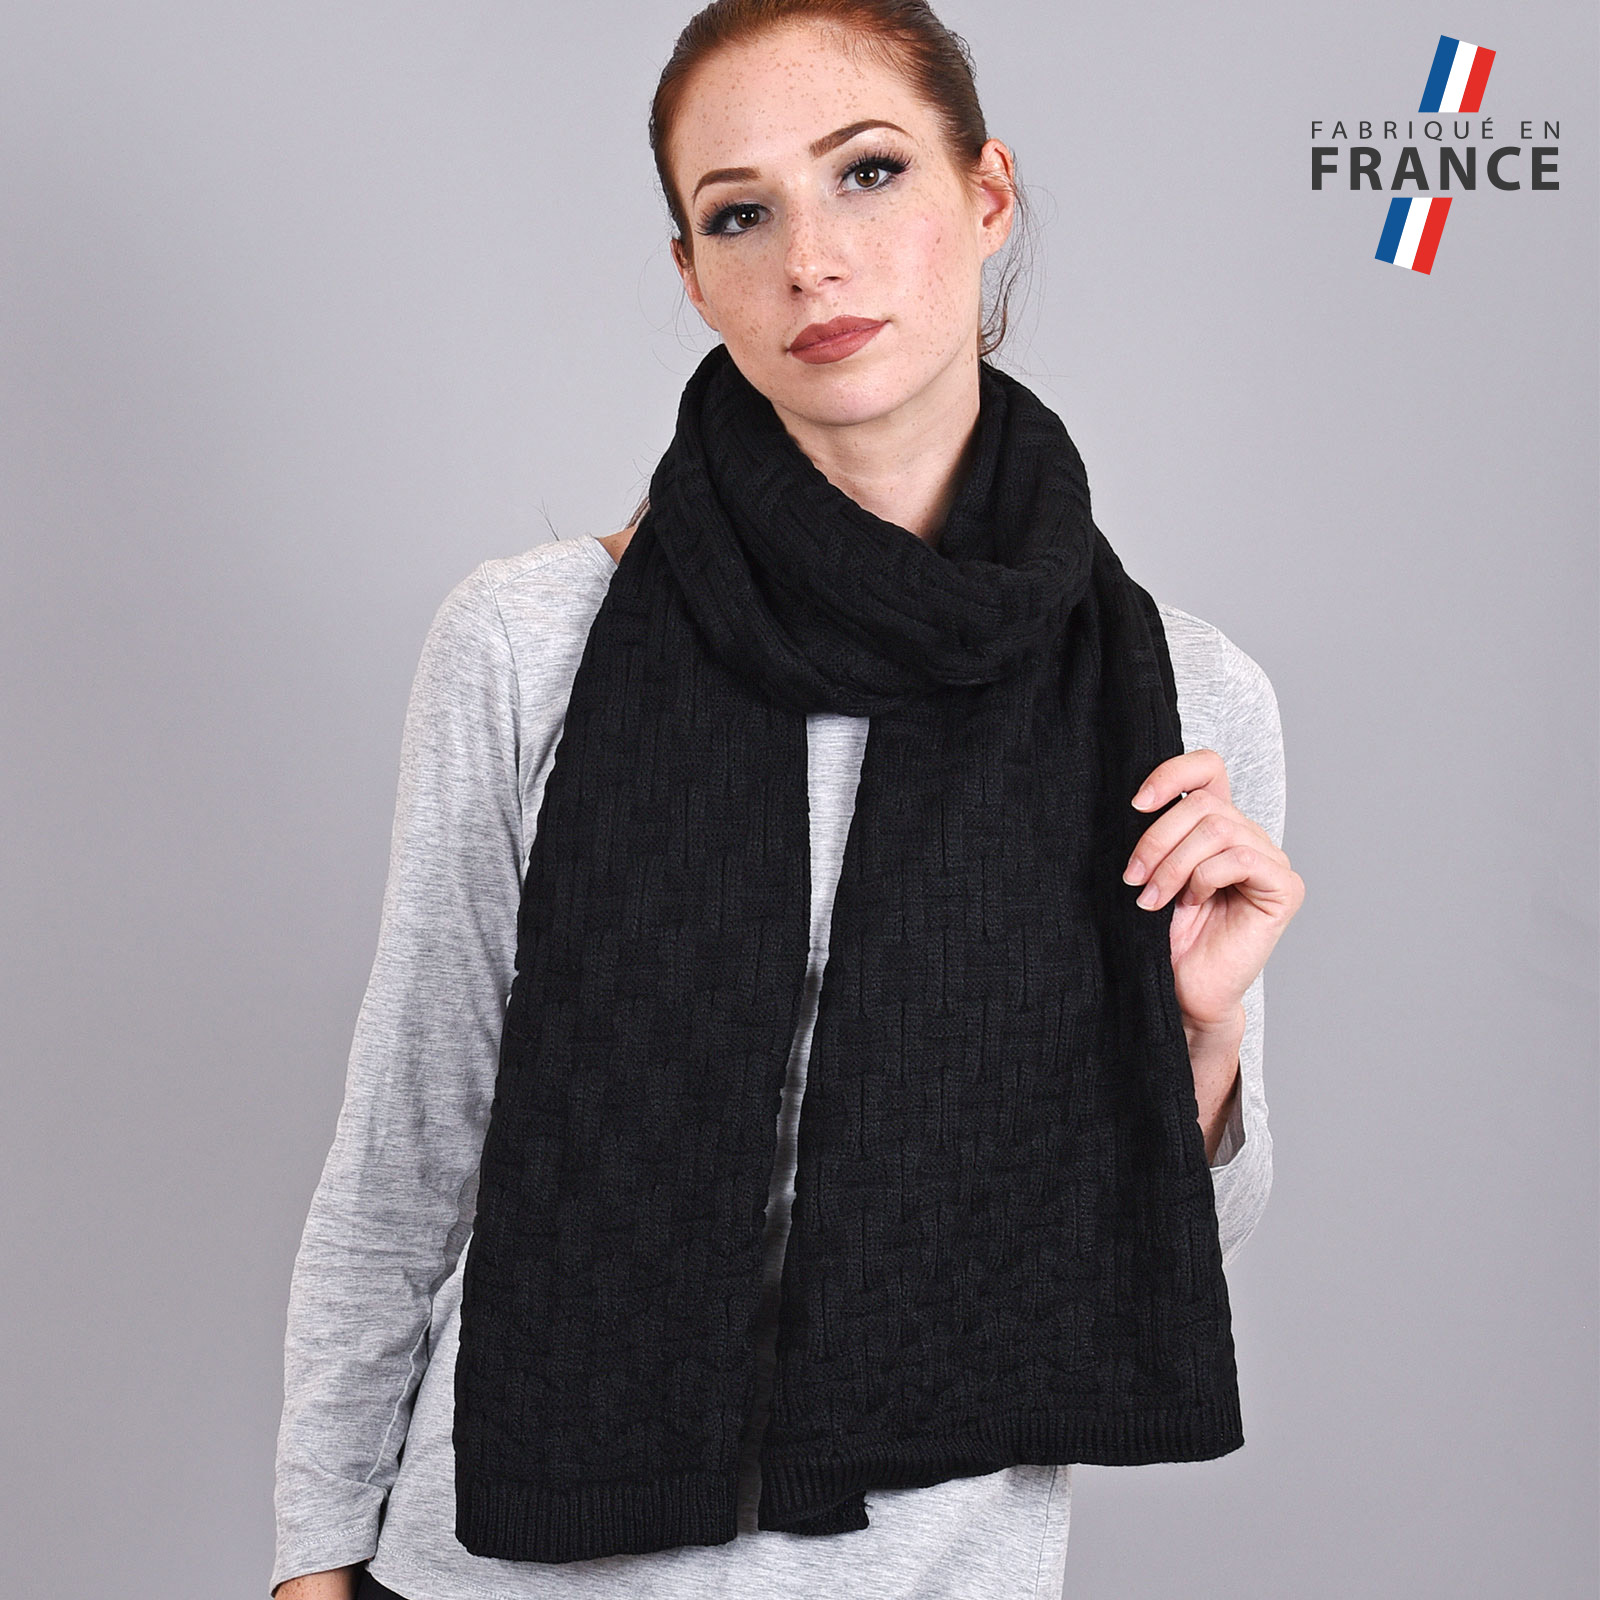 AT-03381-VF16-LB_FR-echarpe-laine-a-franges-gris-anthracite-fabrication-francaise